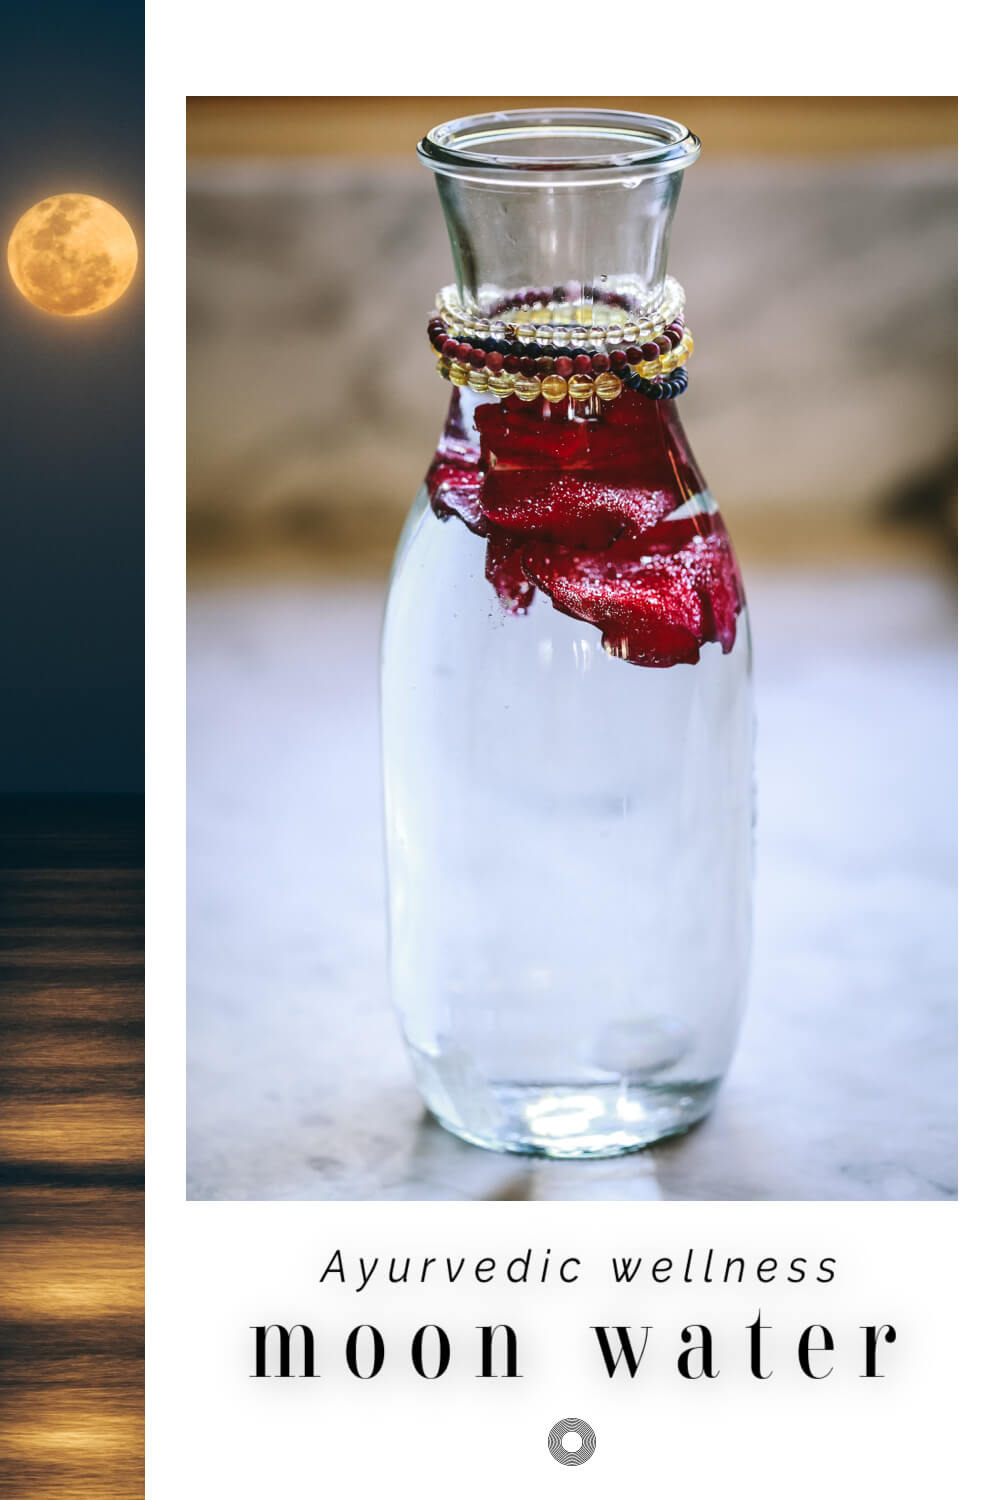 A glass carafe filled with full moon water, rose petals, and crystals.